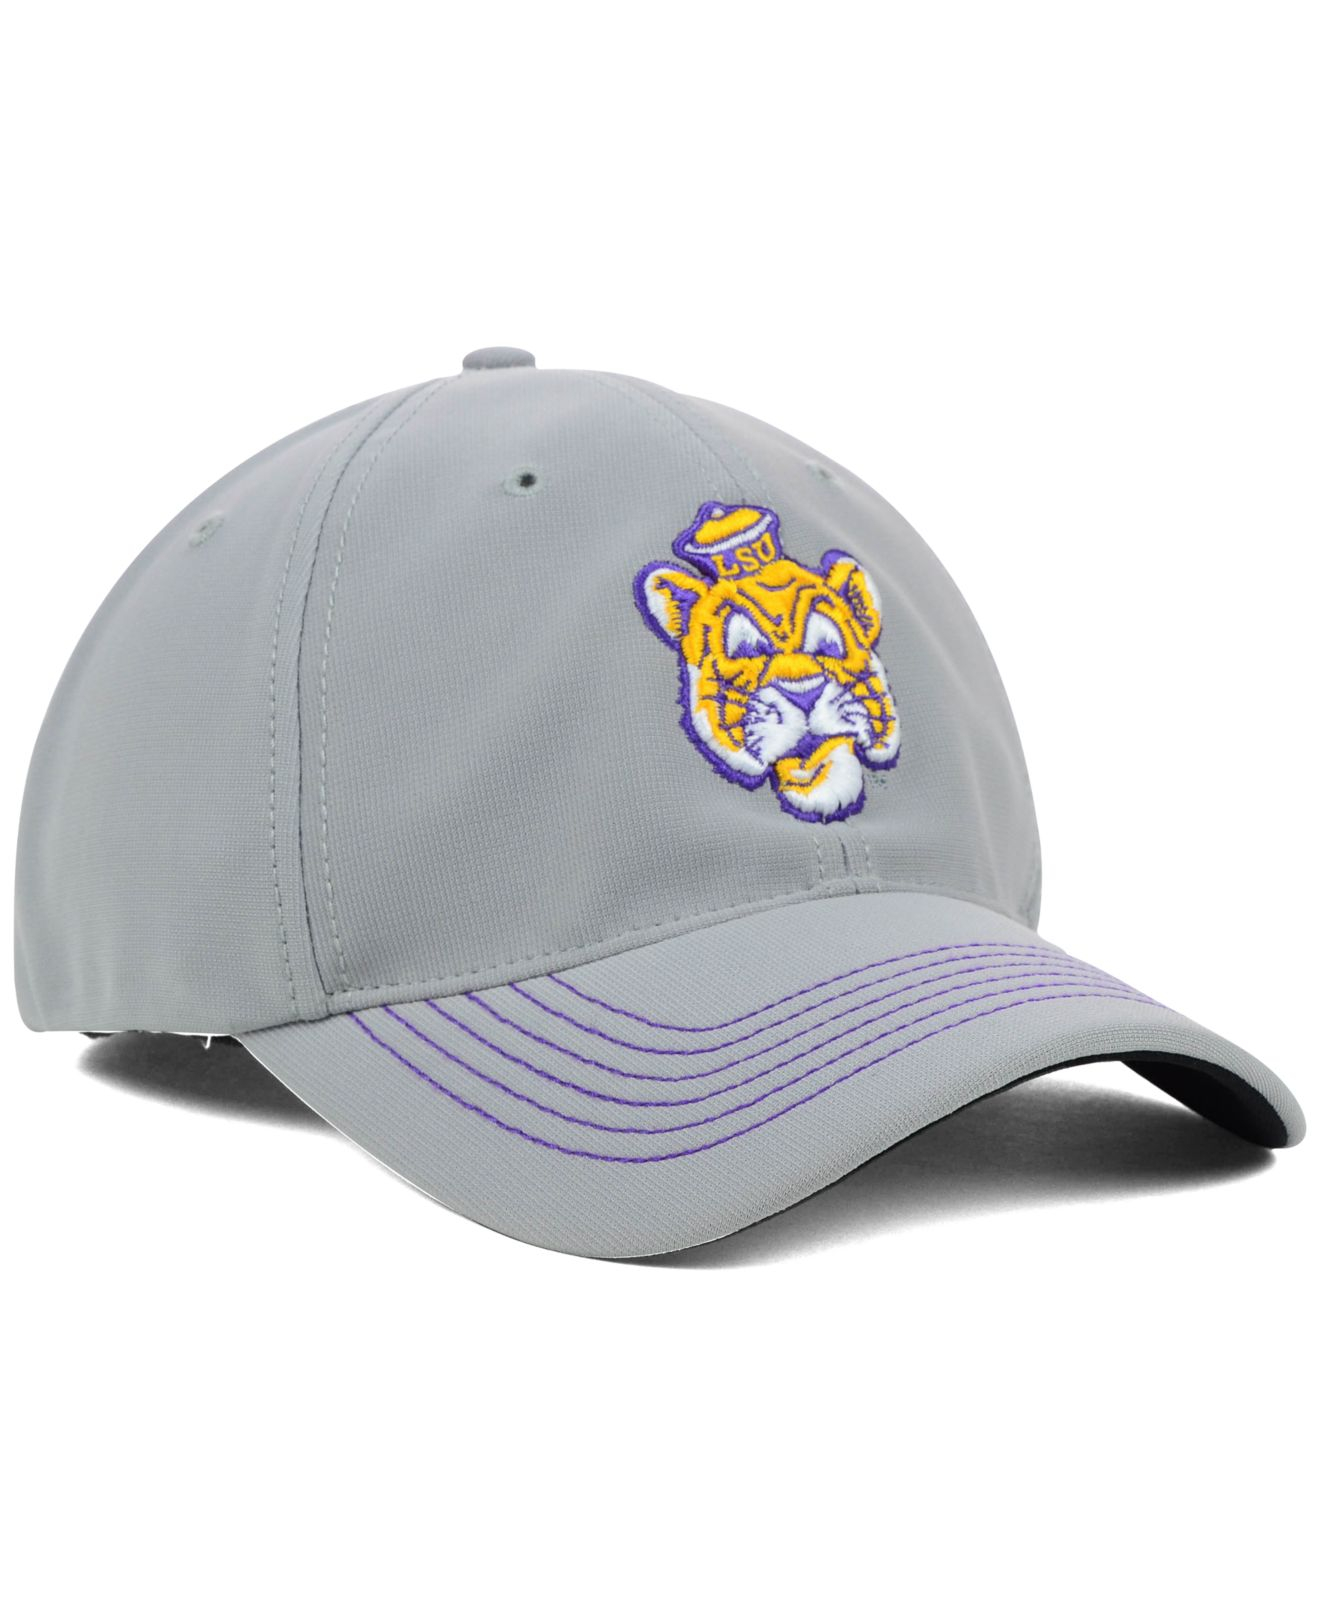 41aeb5860a4 ... italy lyst 47 brand lsu tigers game time closer cap in gray for men  8e84f bb82f